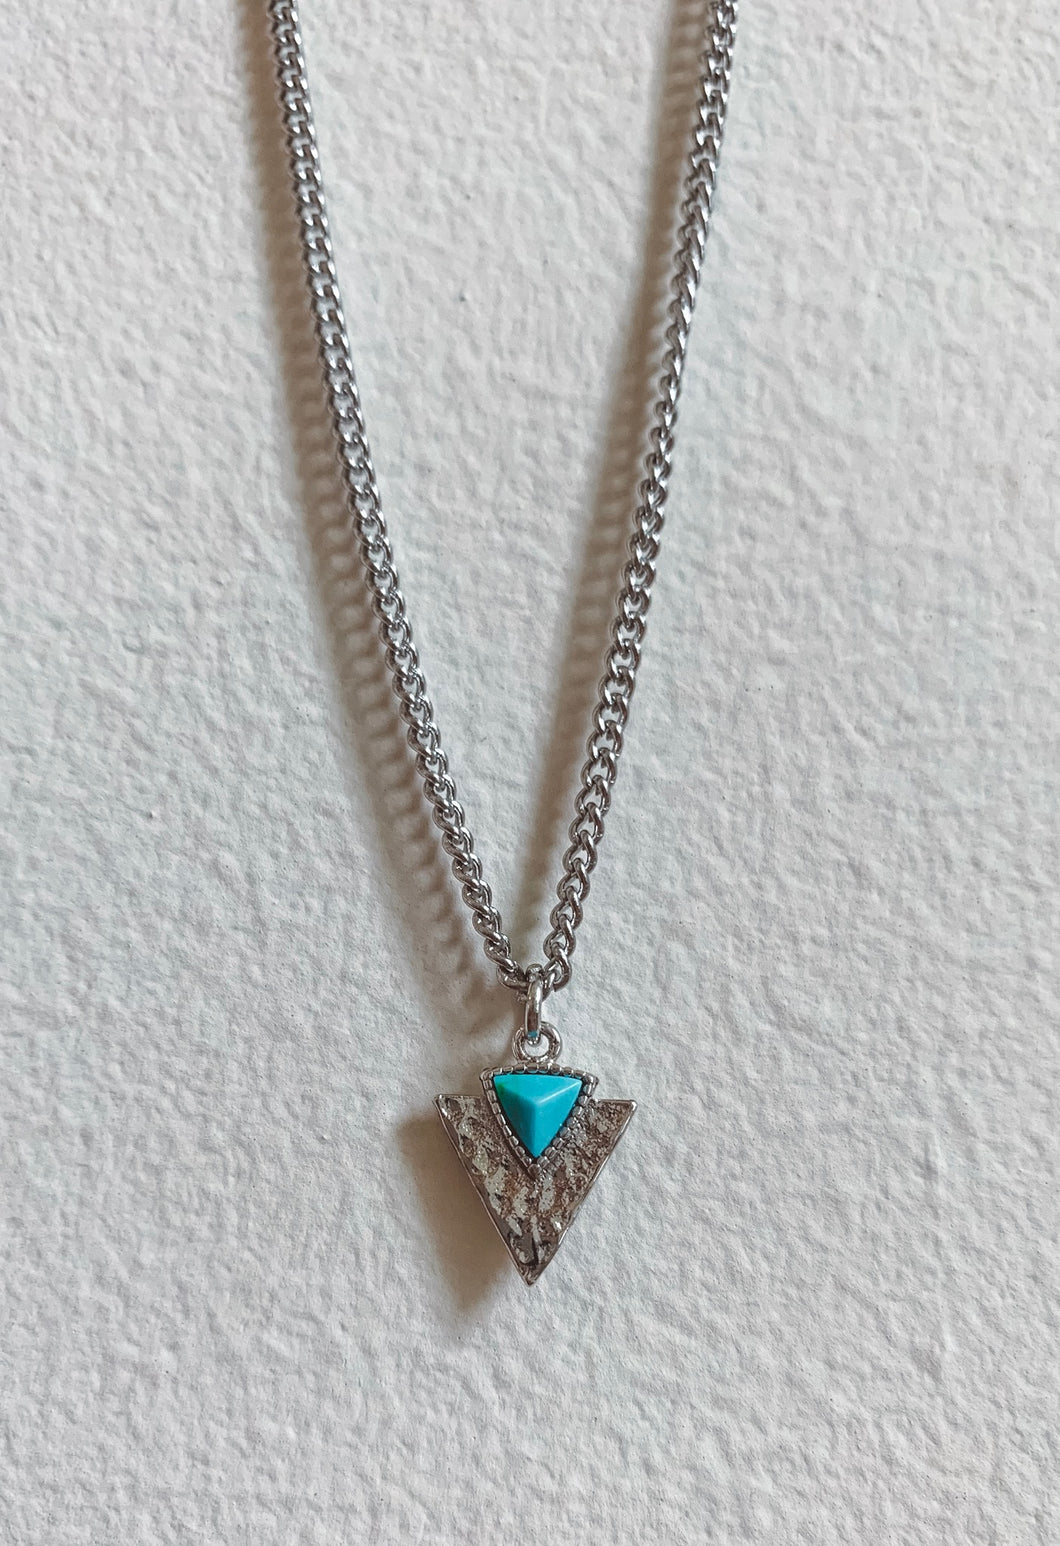 Silver and Turquoise Arrowhead Necklace